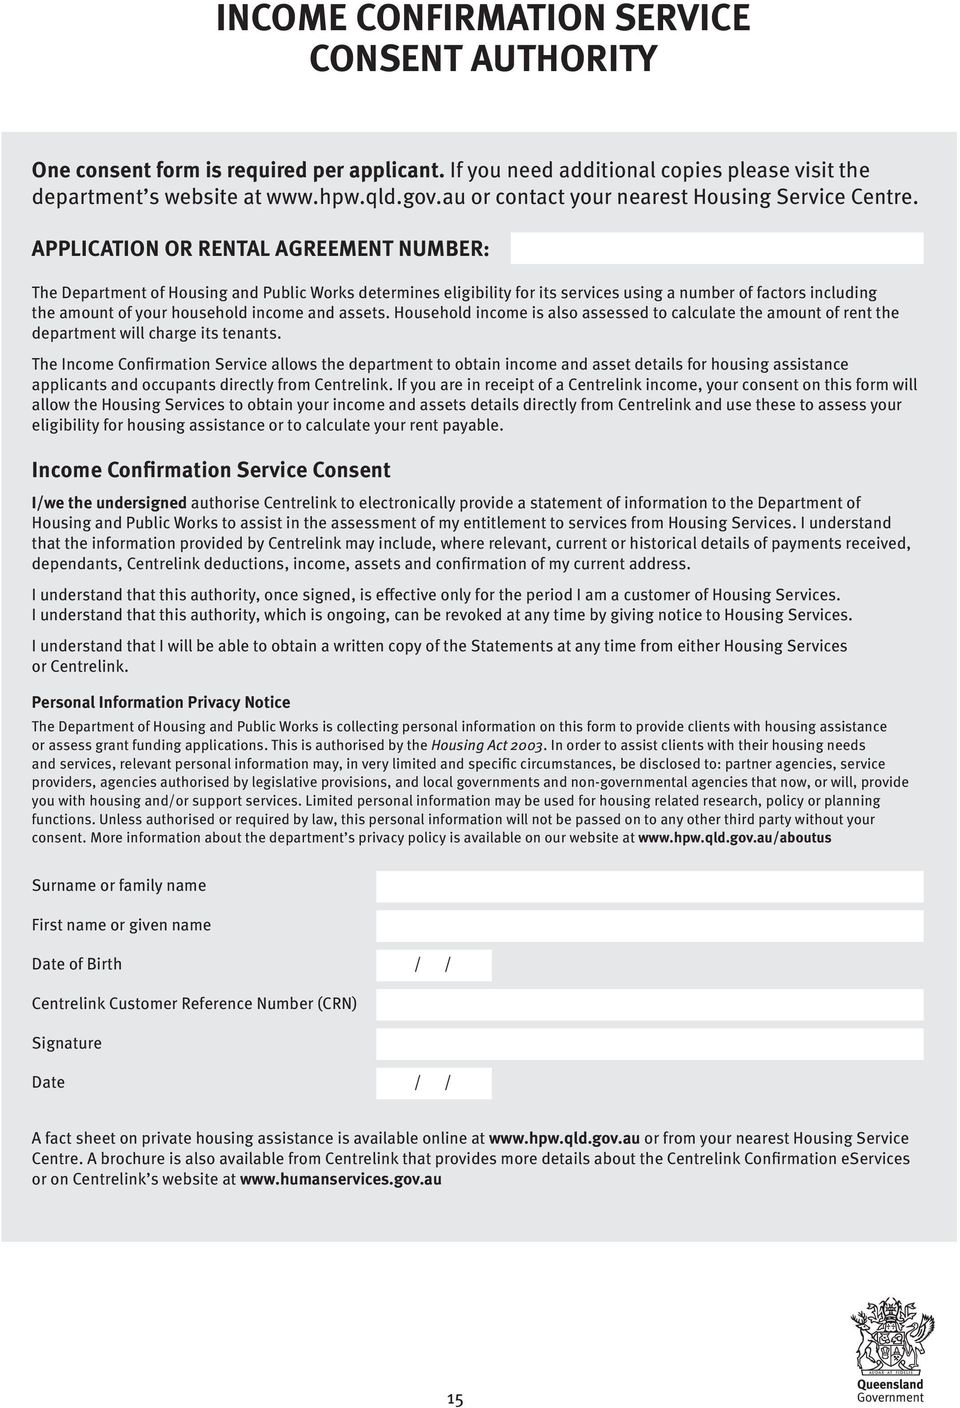 Application for Bond Loan and Rental Grant assistance - PDF